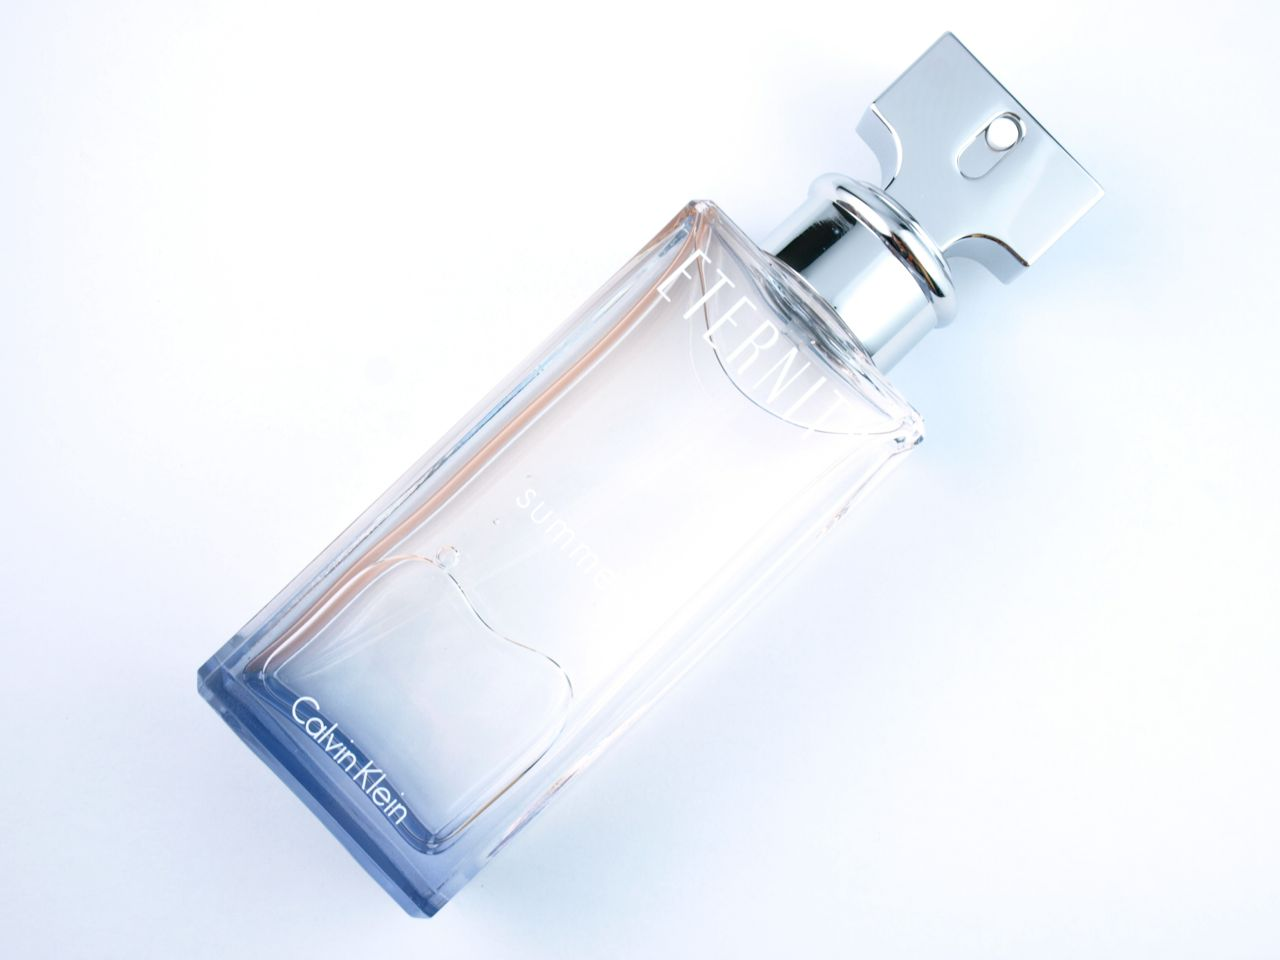 Calvin Klein Eternity Summer 2015 Eau de Parfum Spray: Review